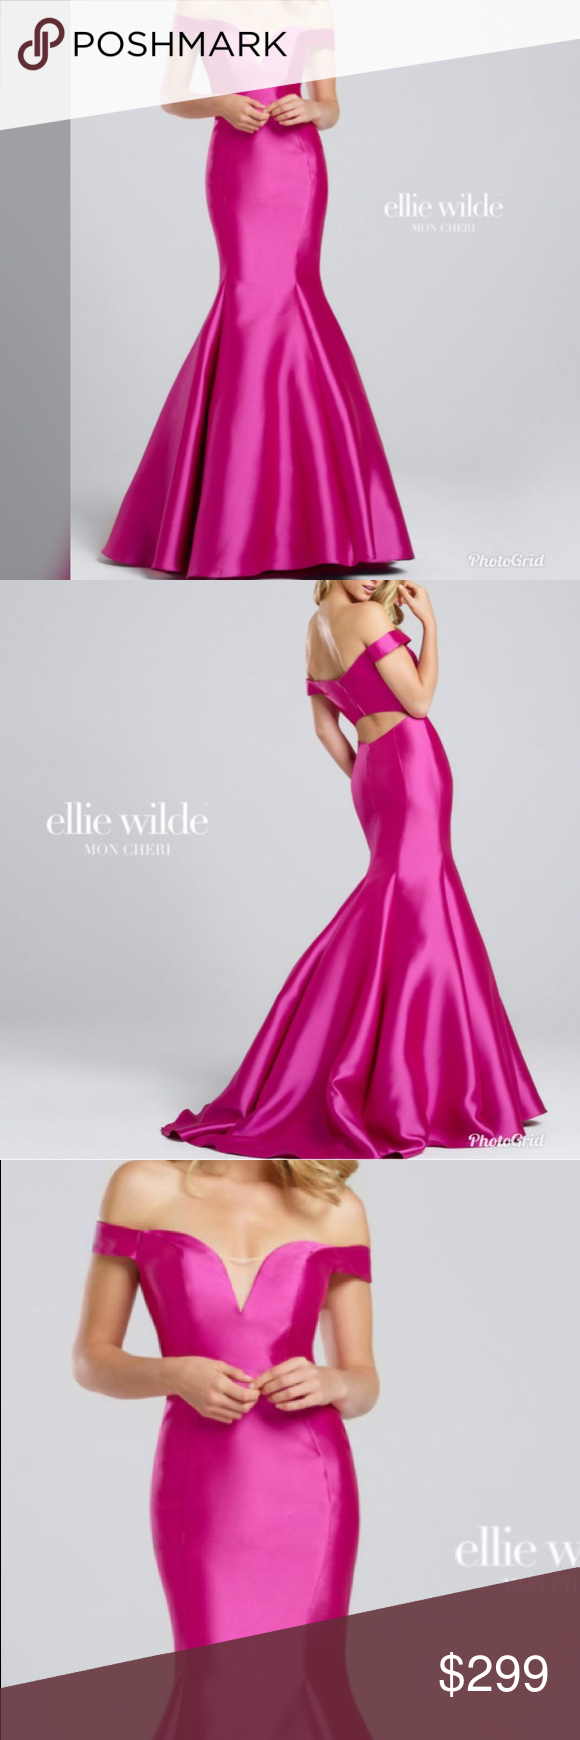 Ellie wilde ew hot pink mermaid prom dress boutique hot pink